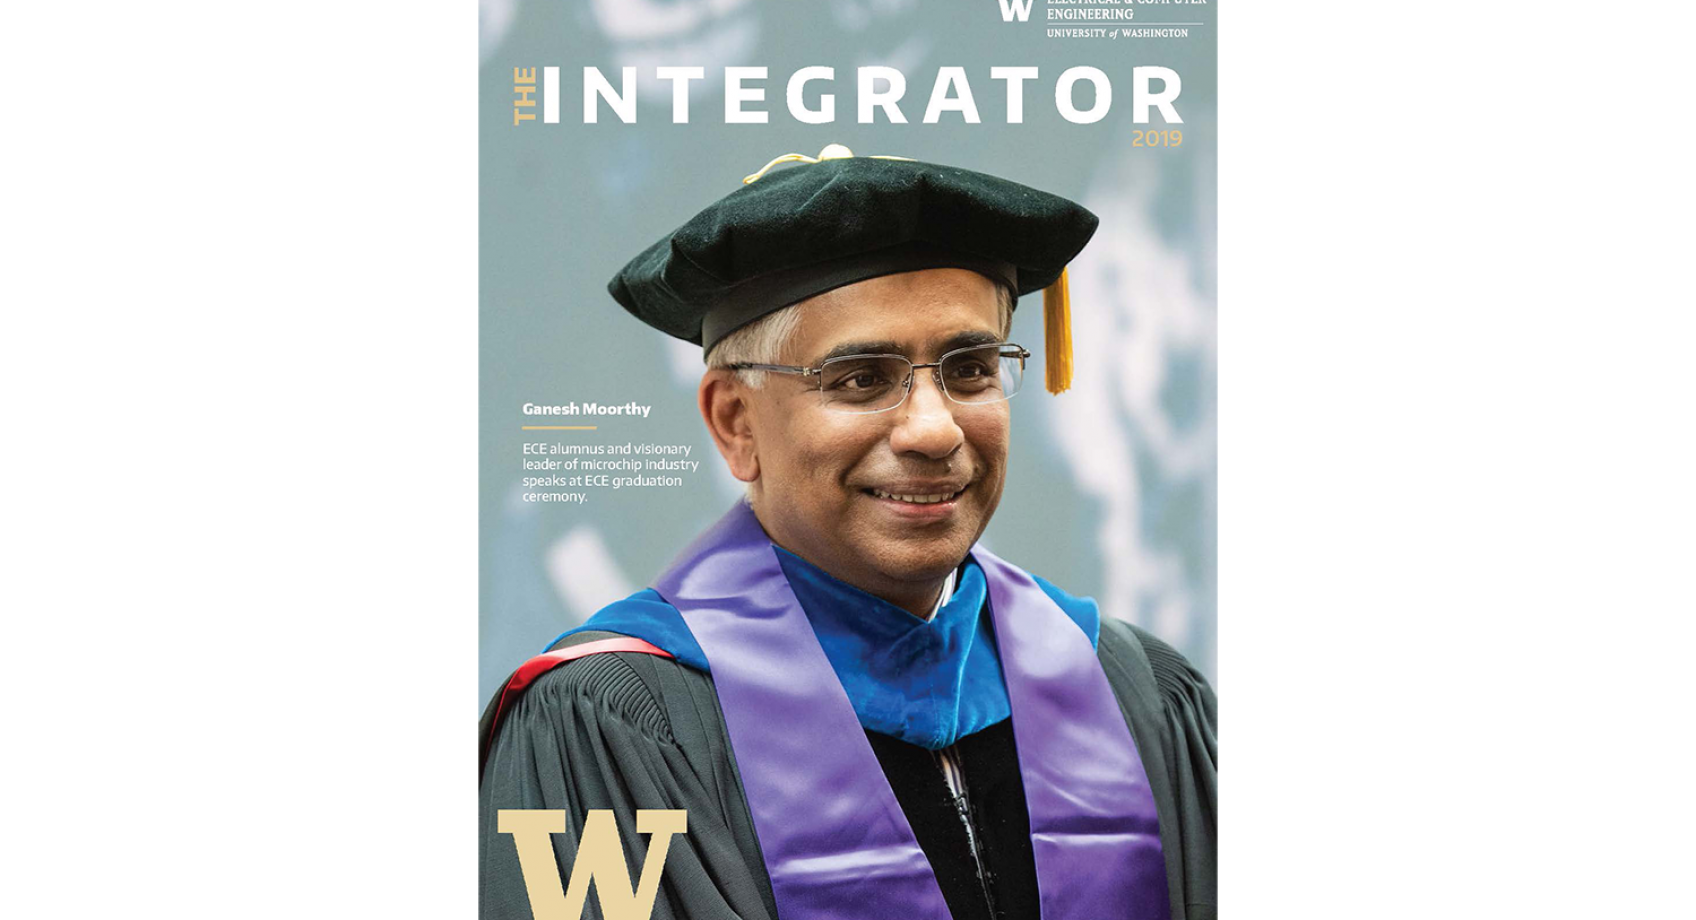 The Integrator 2019 now available online! Banner